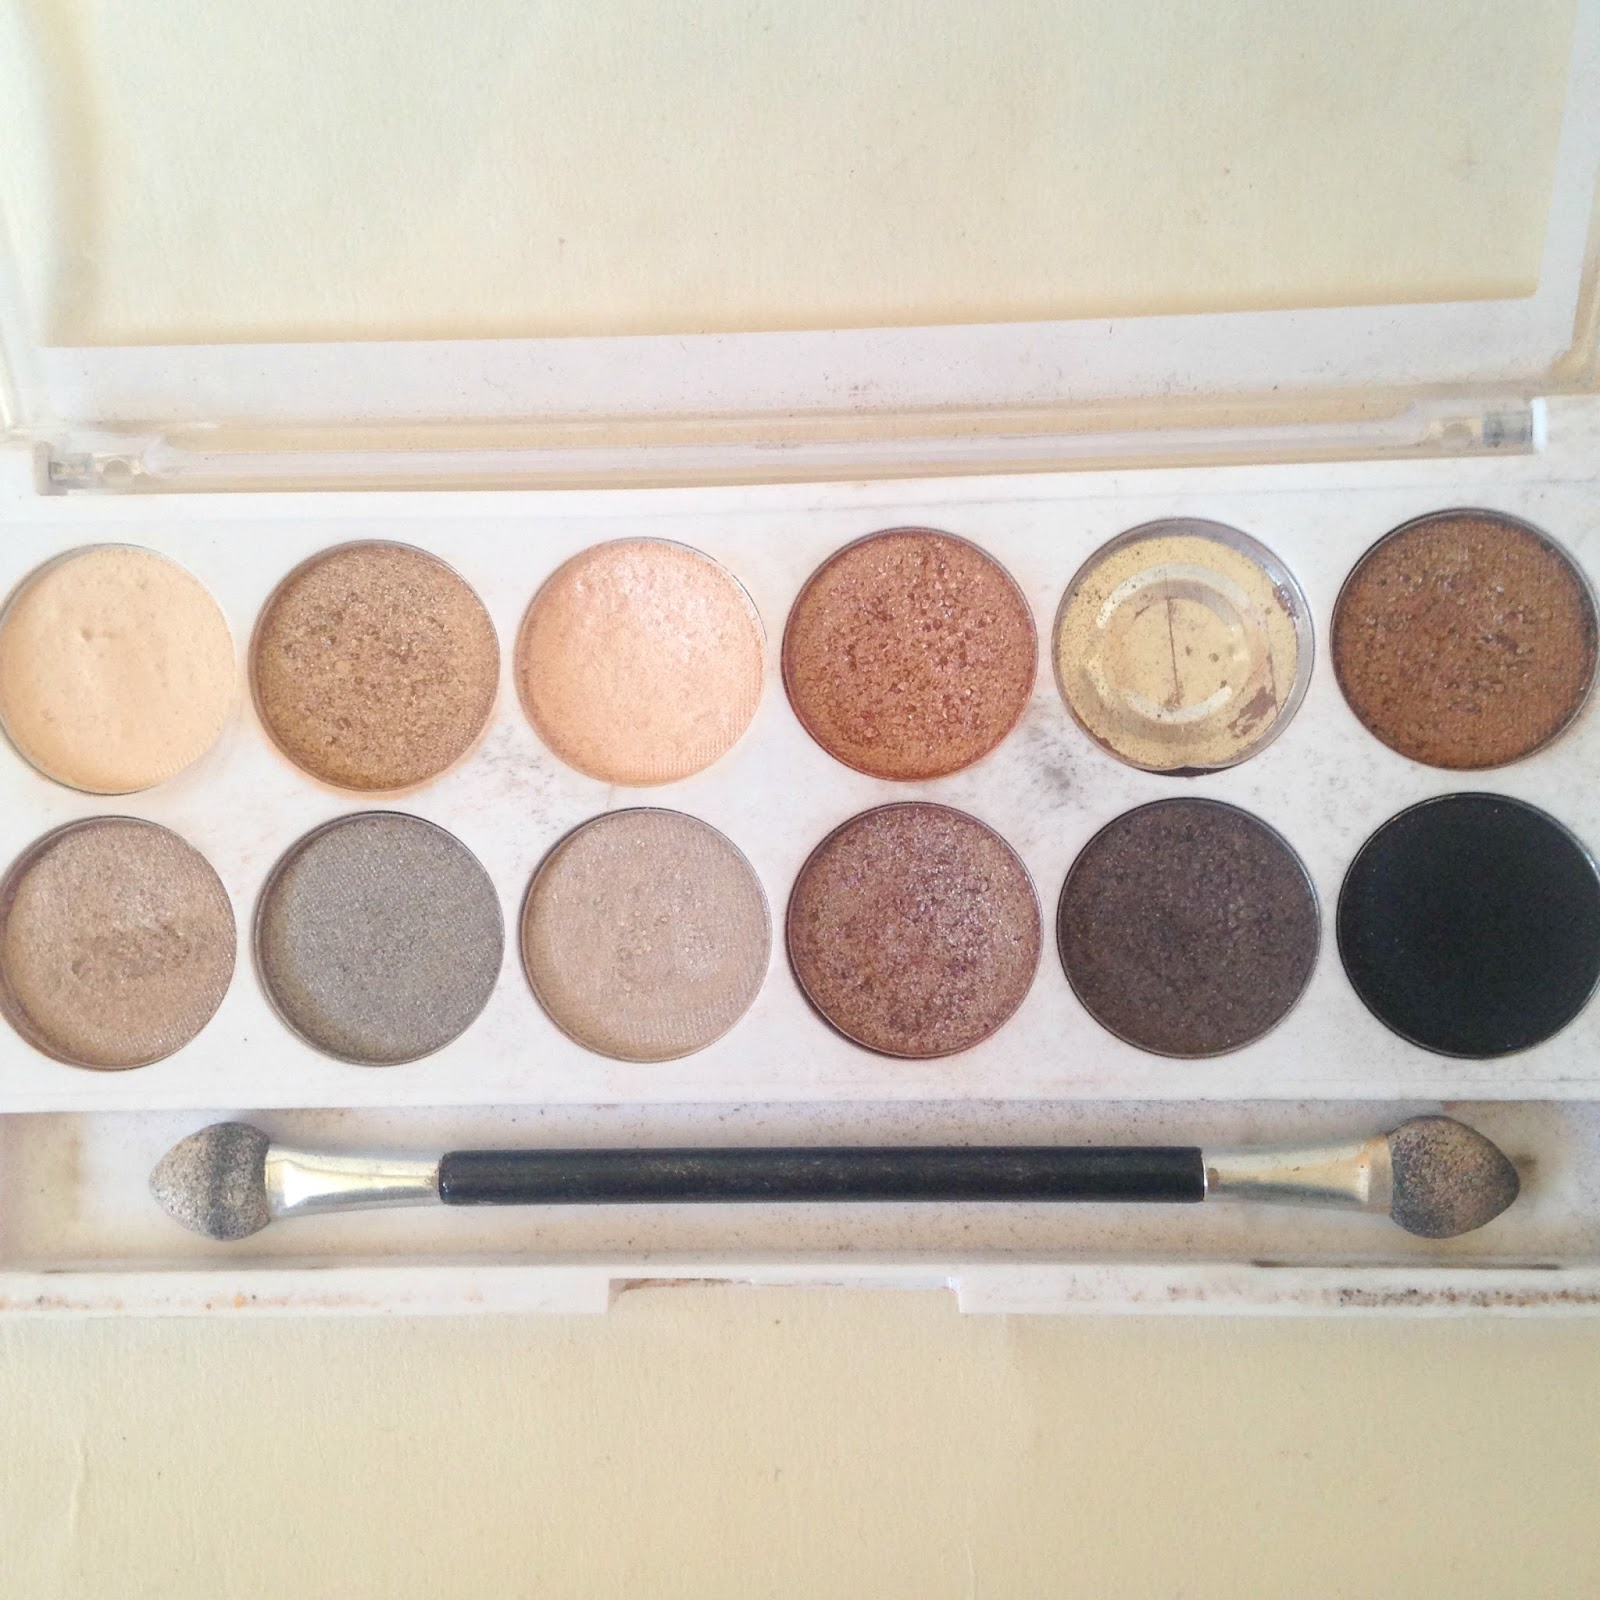 Make Up Academy Undress Me Too Palette